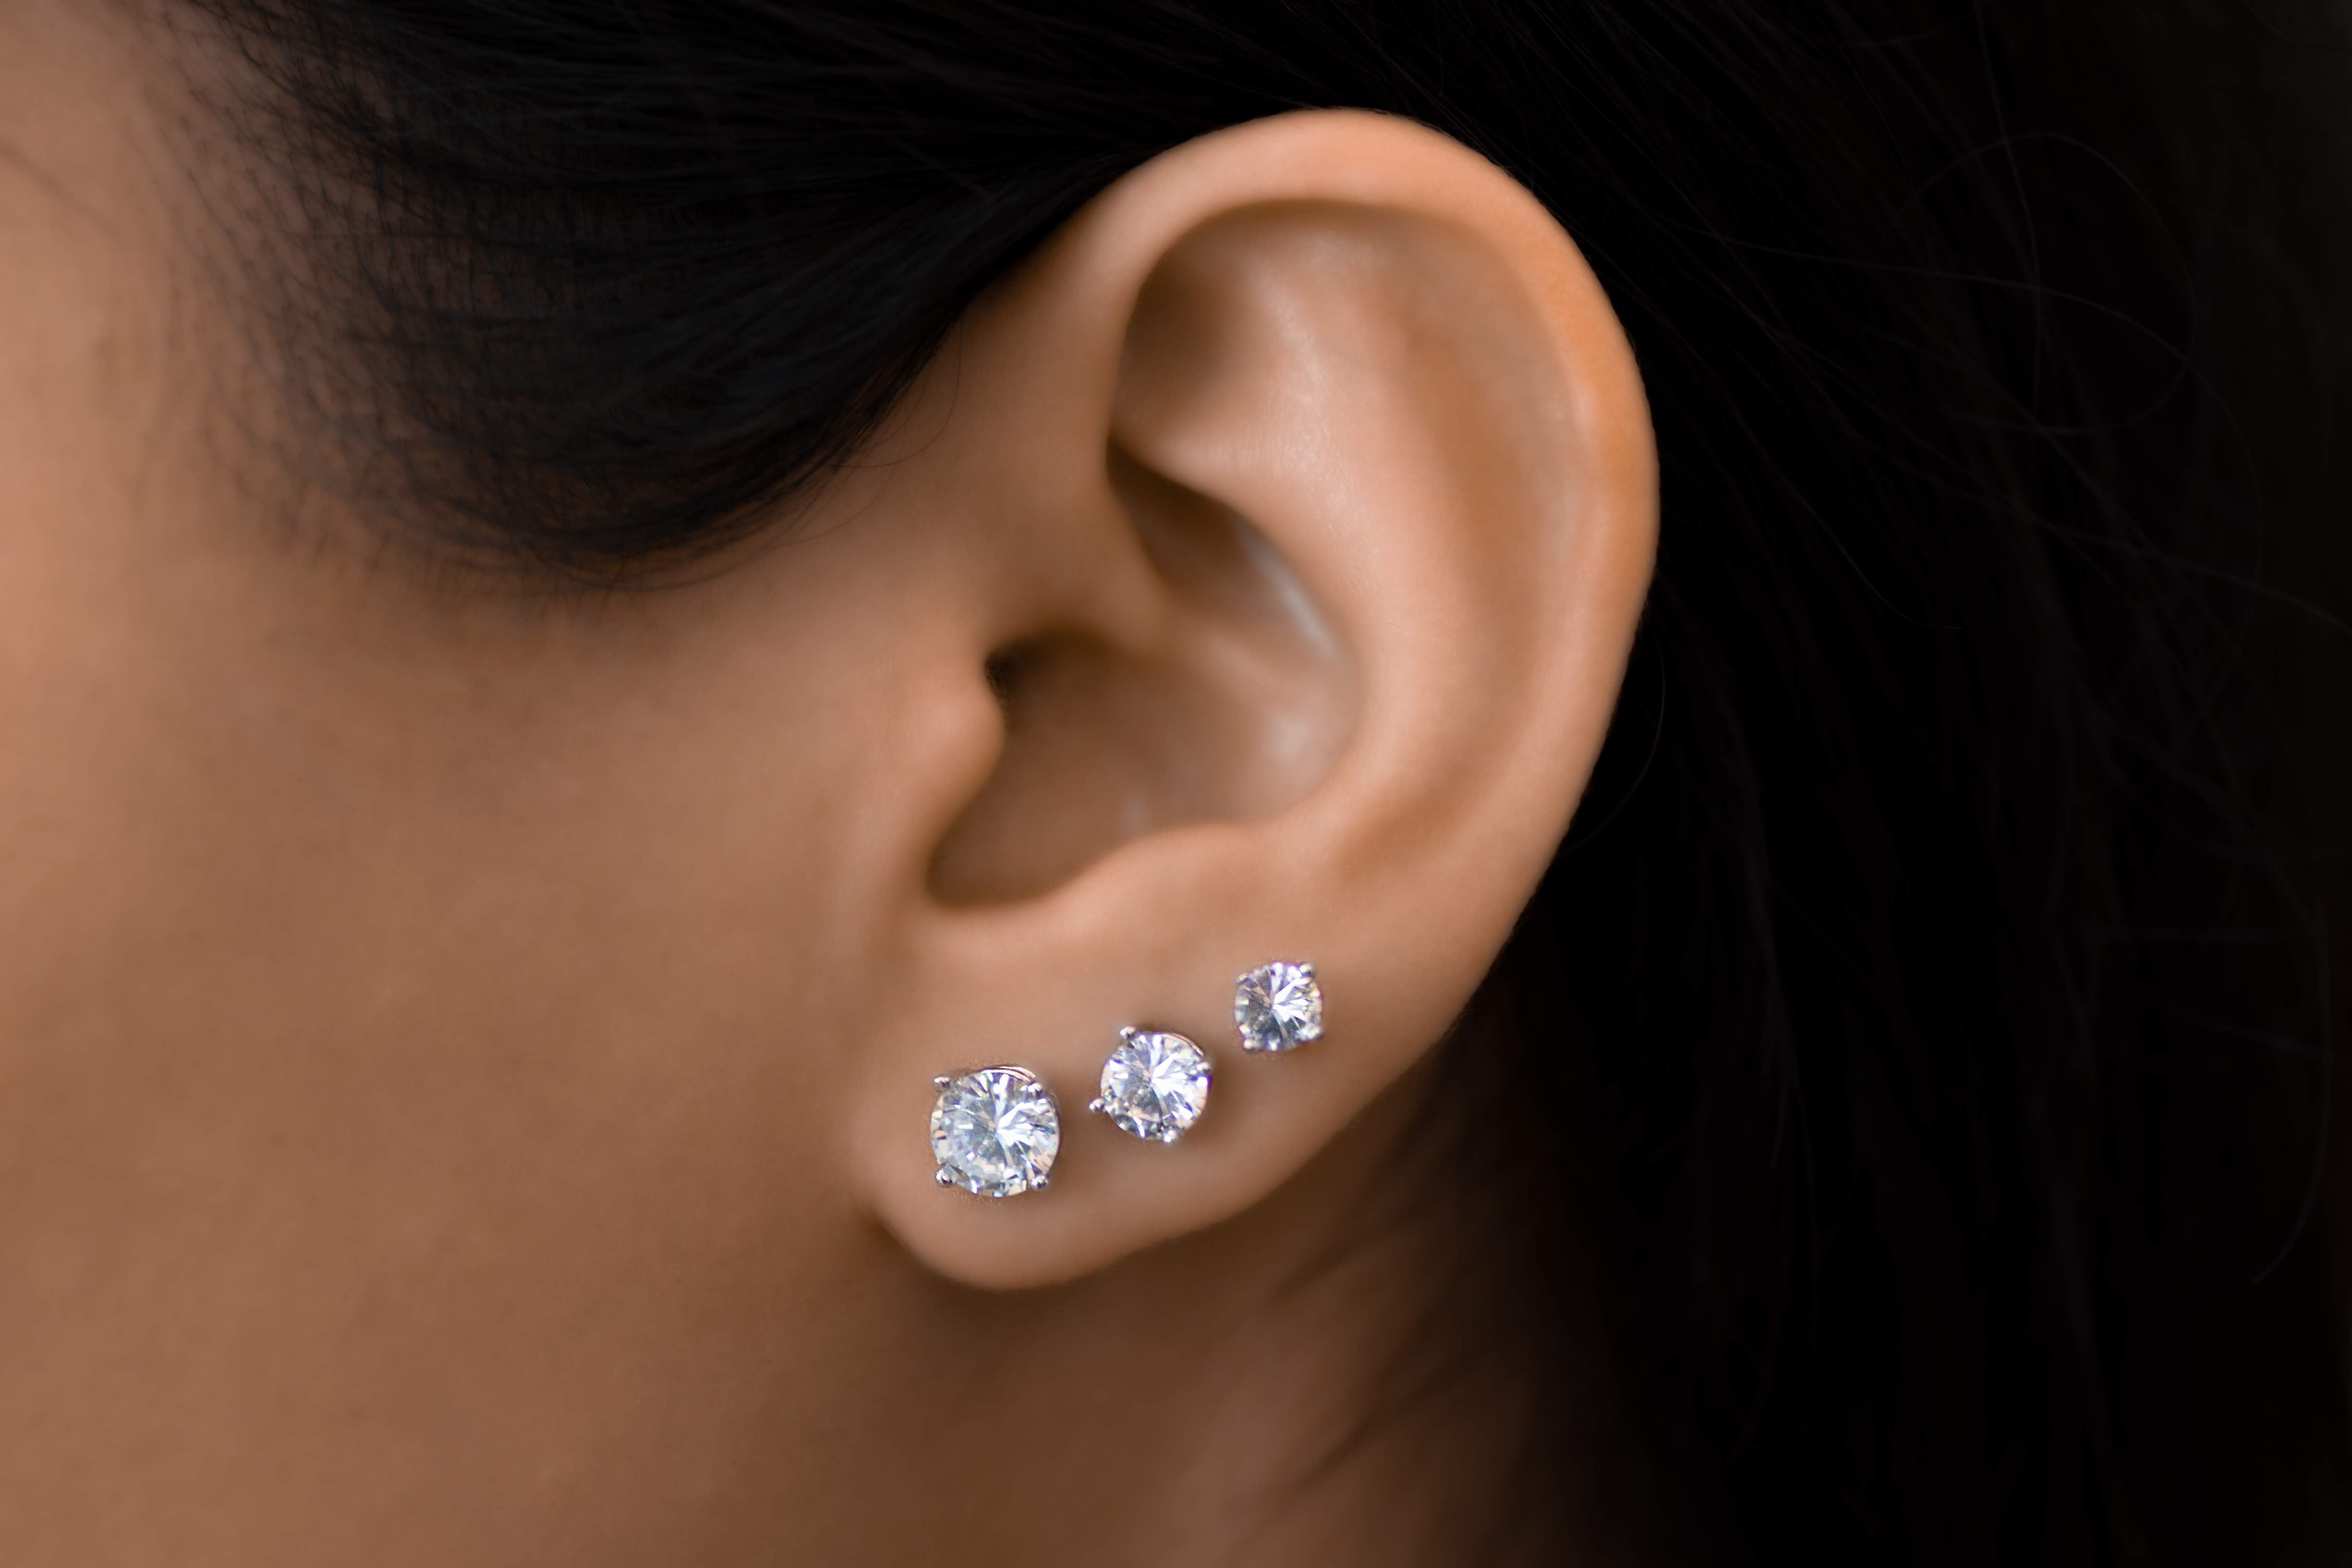 Round Brilliant Diamond Stud Earrings - Value Quality